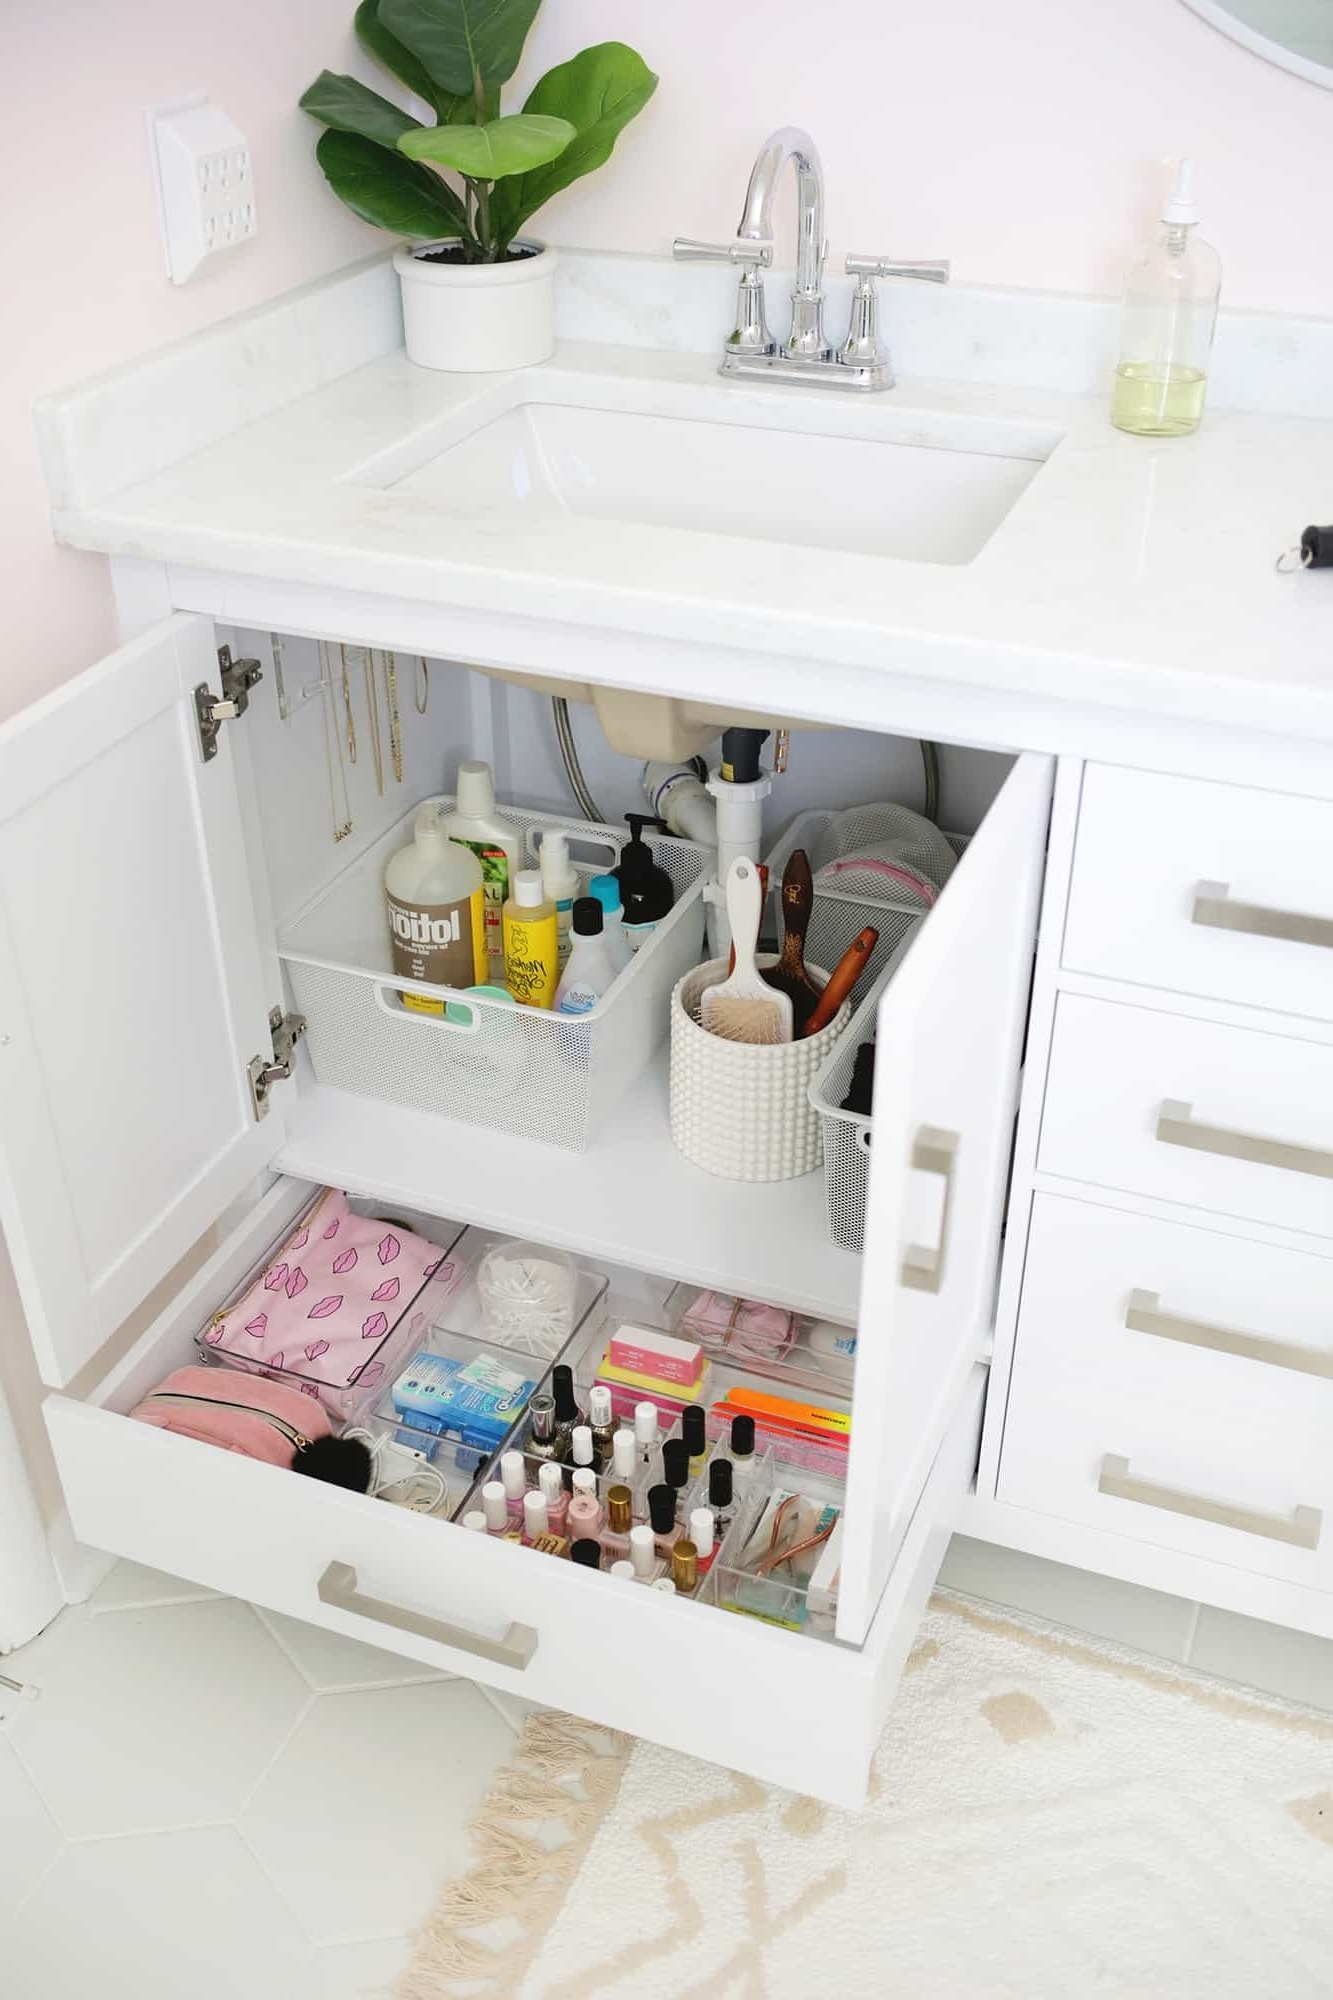 5 Bathroom Storage Mistakes (And How To Fix Them) A College Bathroom Storage